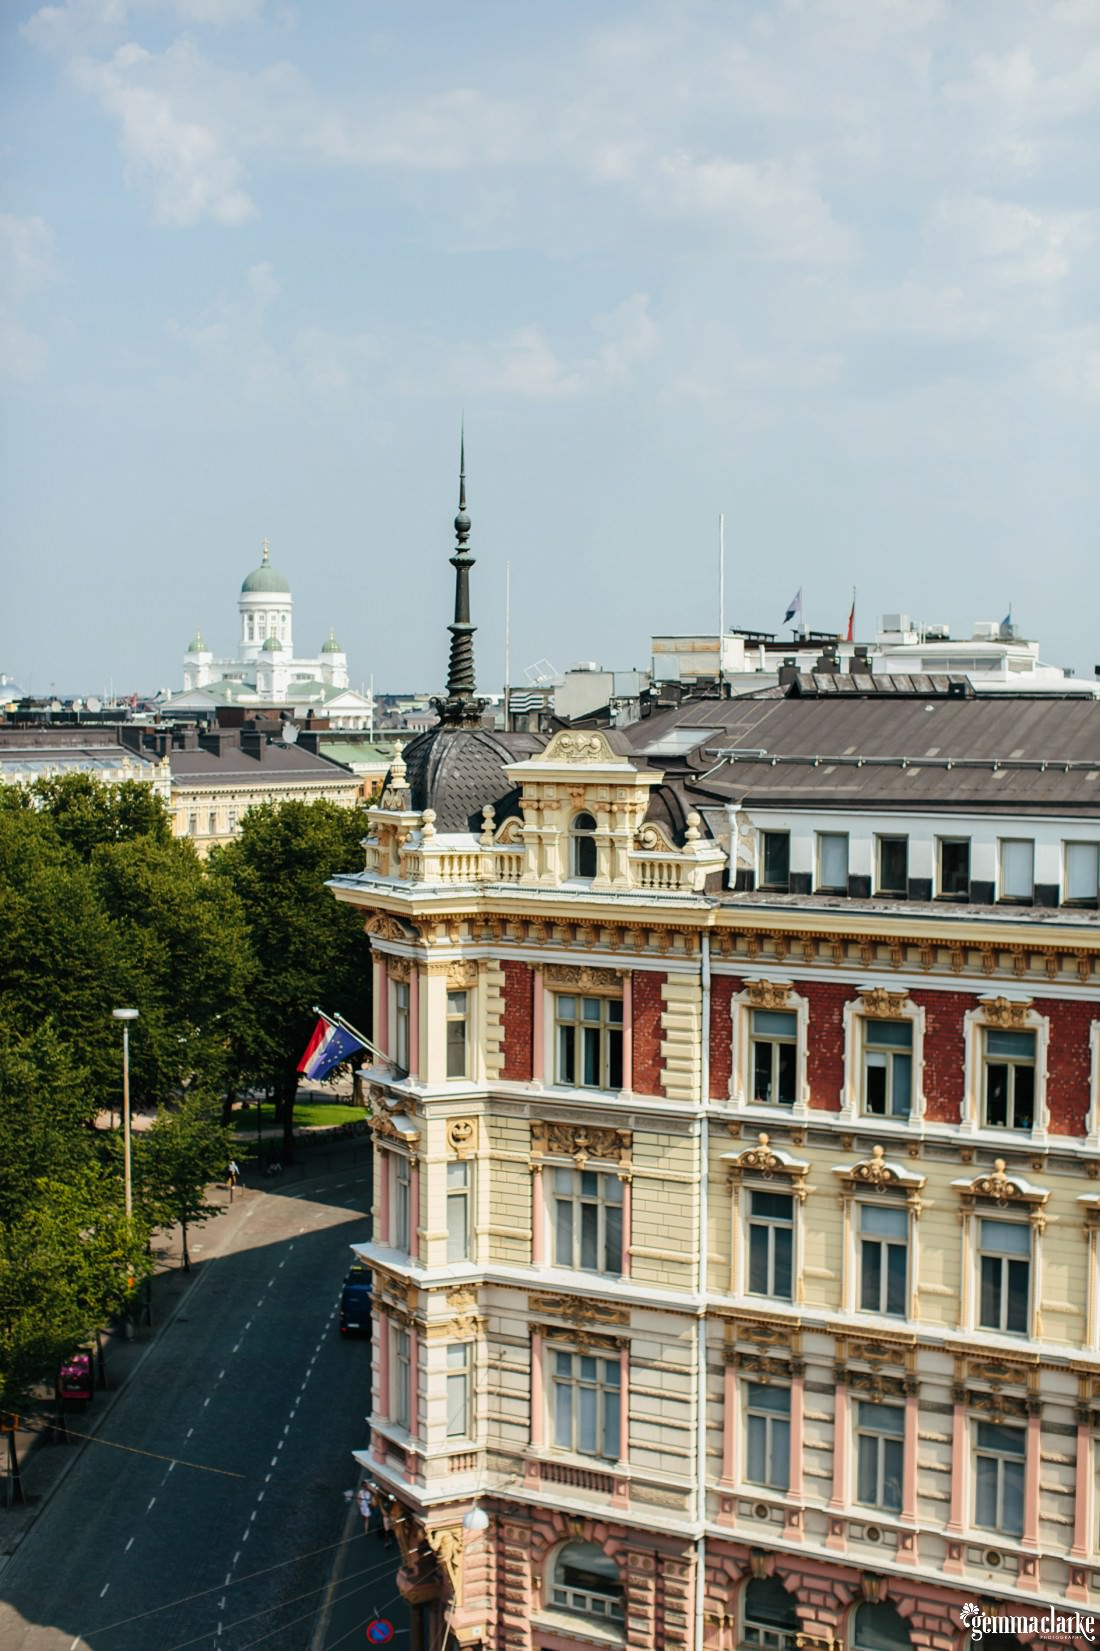 A historic Helsinki building as seen from the rooftop of a nearby hotel